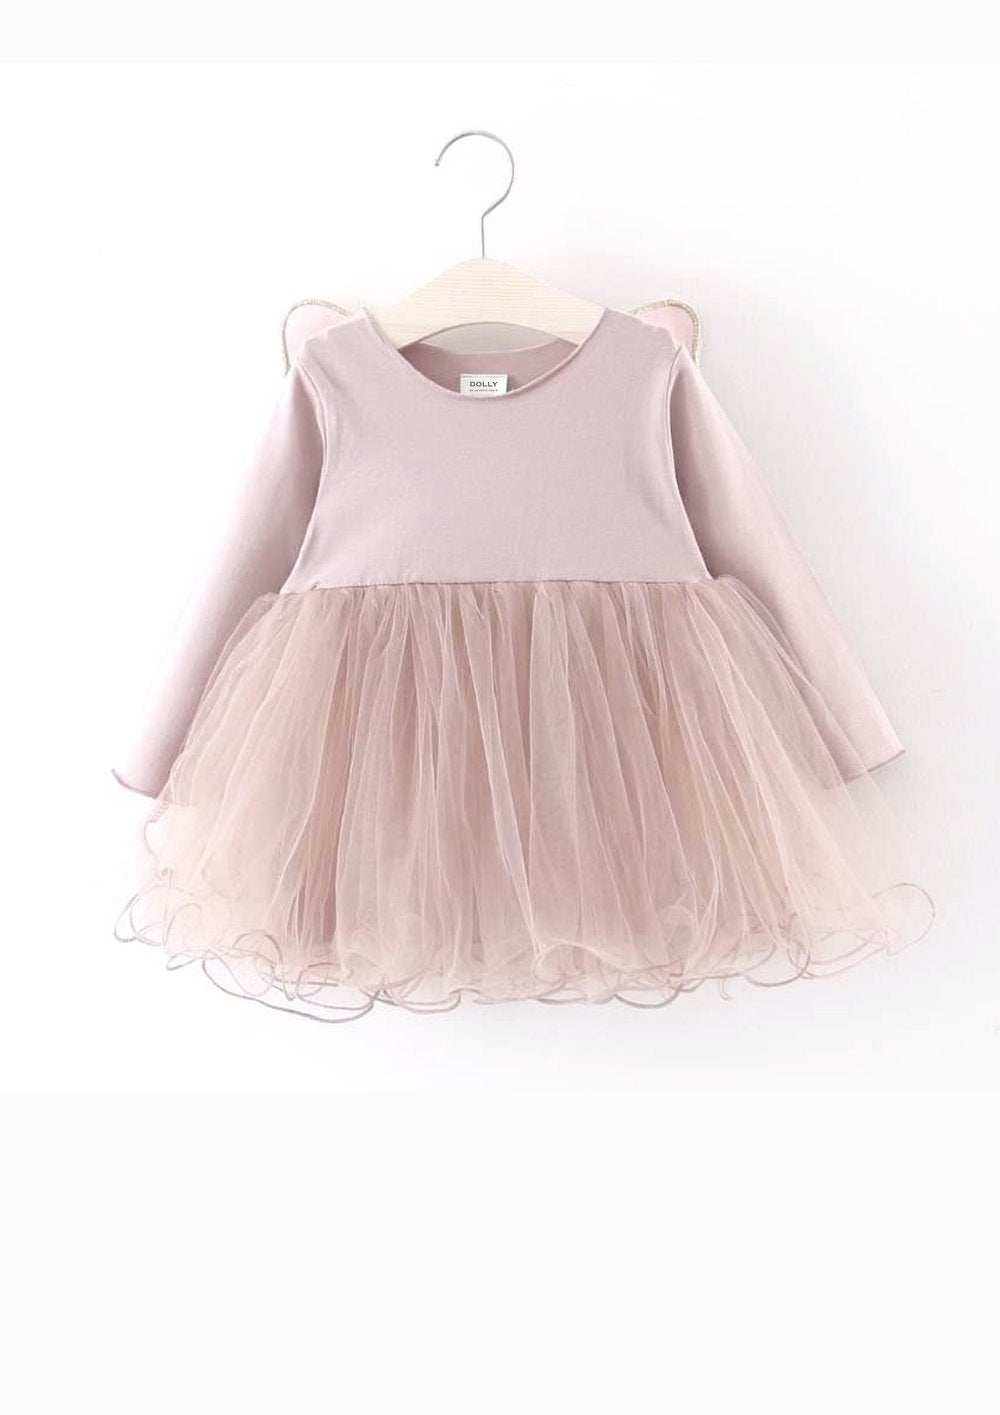 DOLLY by Le Petit Tom BUTTERFLY WINGS TUTU DRESS pink